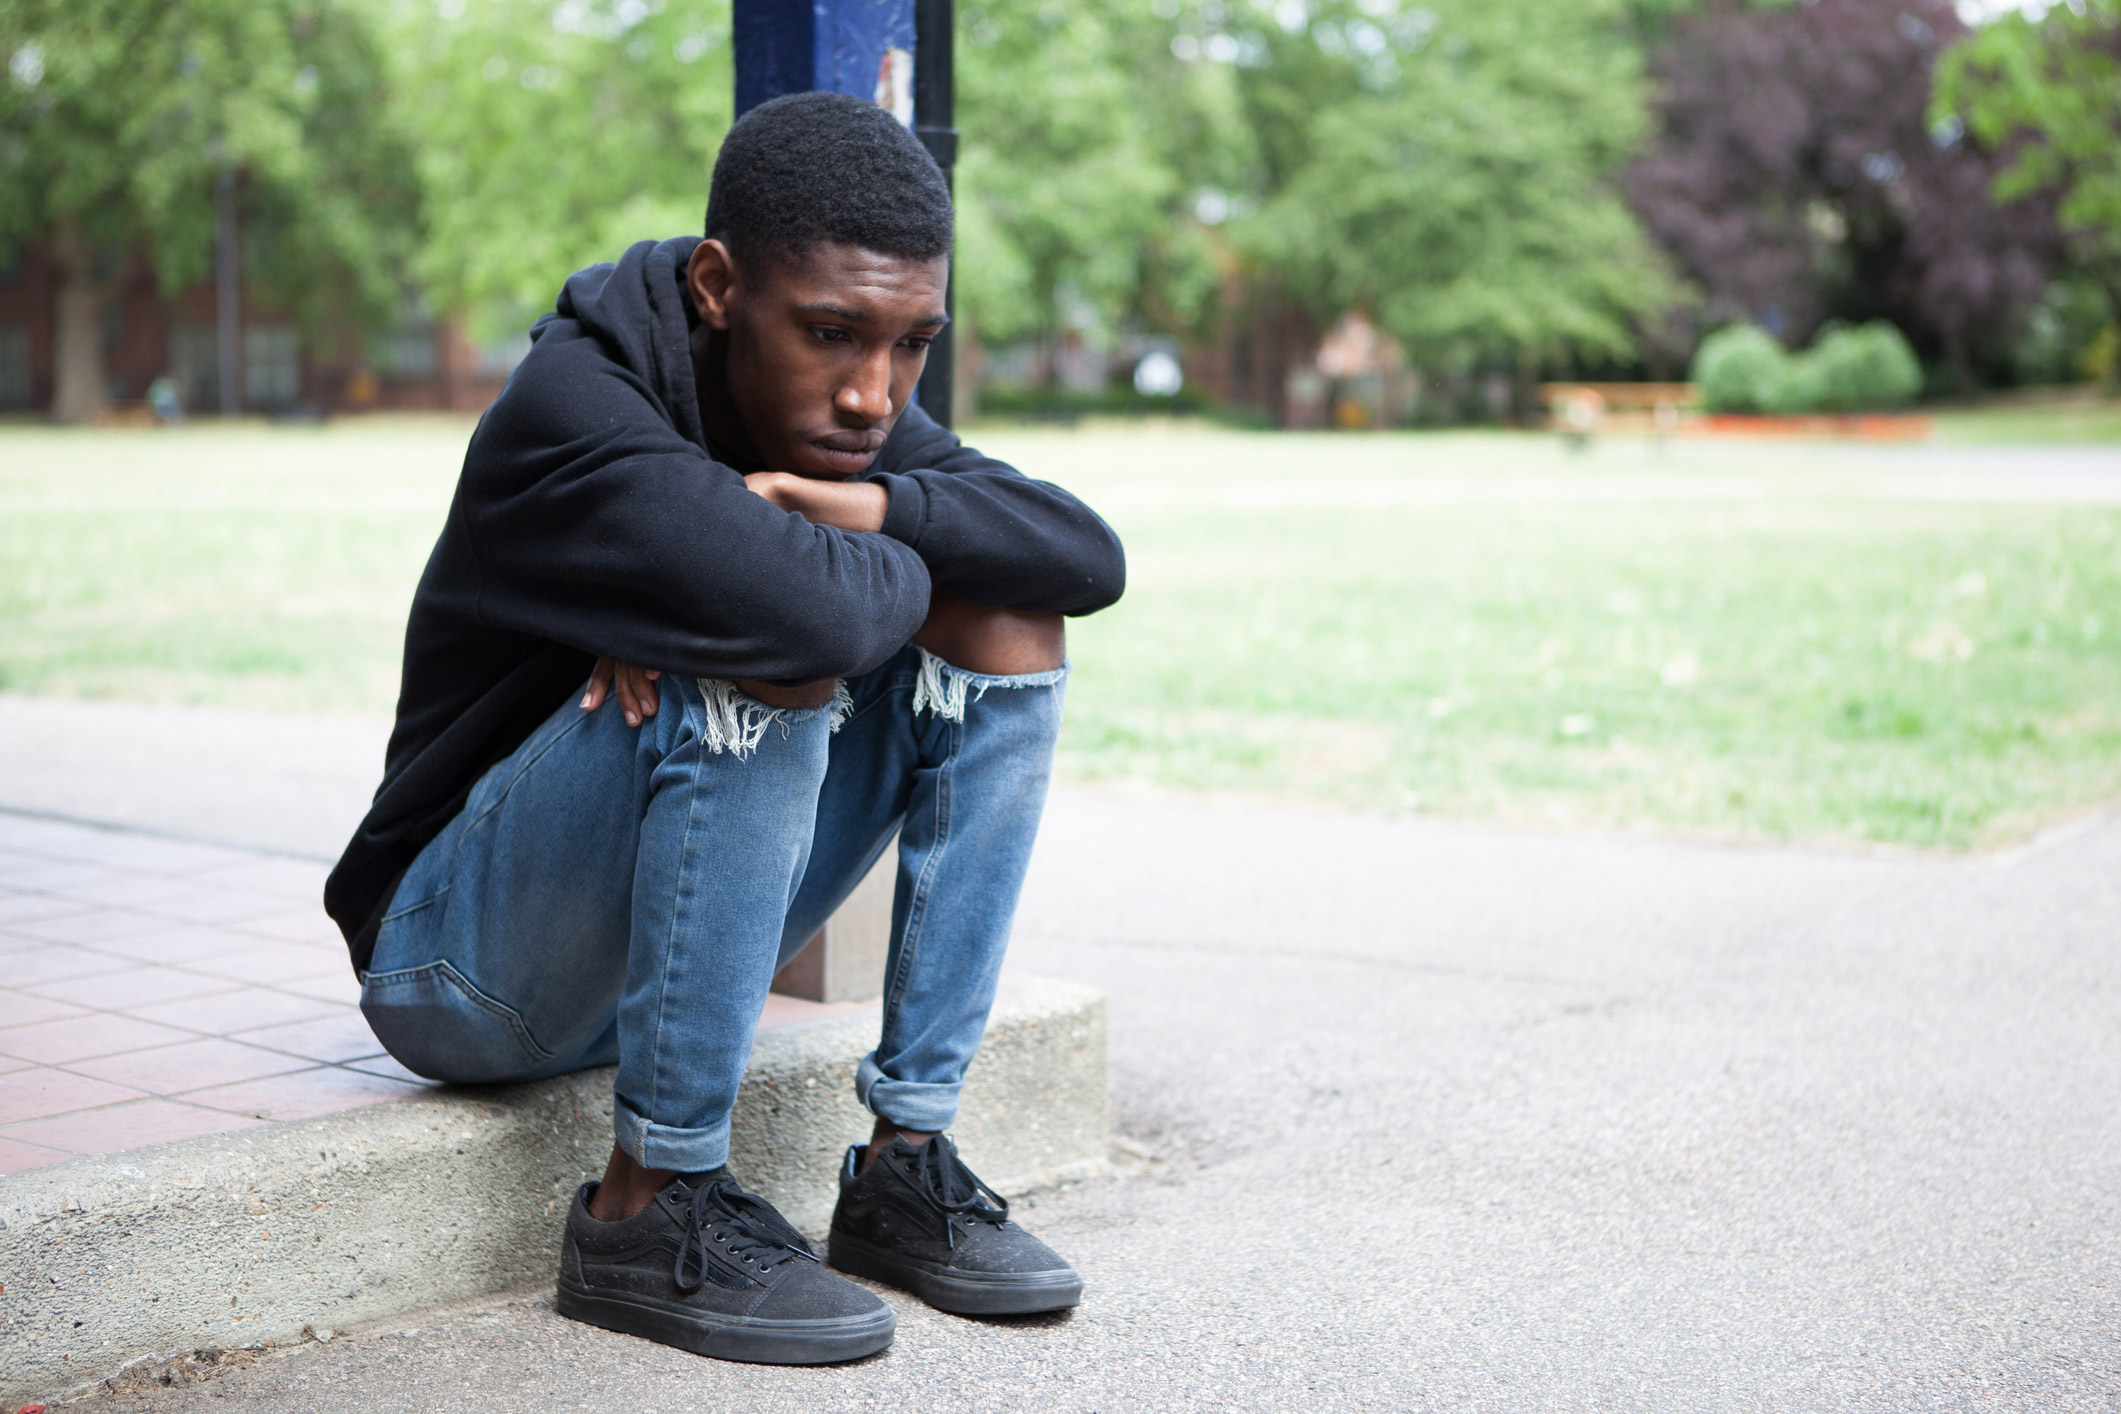 A young African American man sits on a sidewalk of a building at a curb pondering somewhat worried.